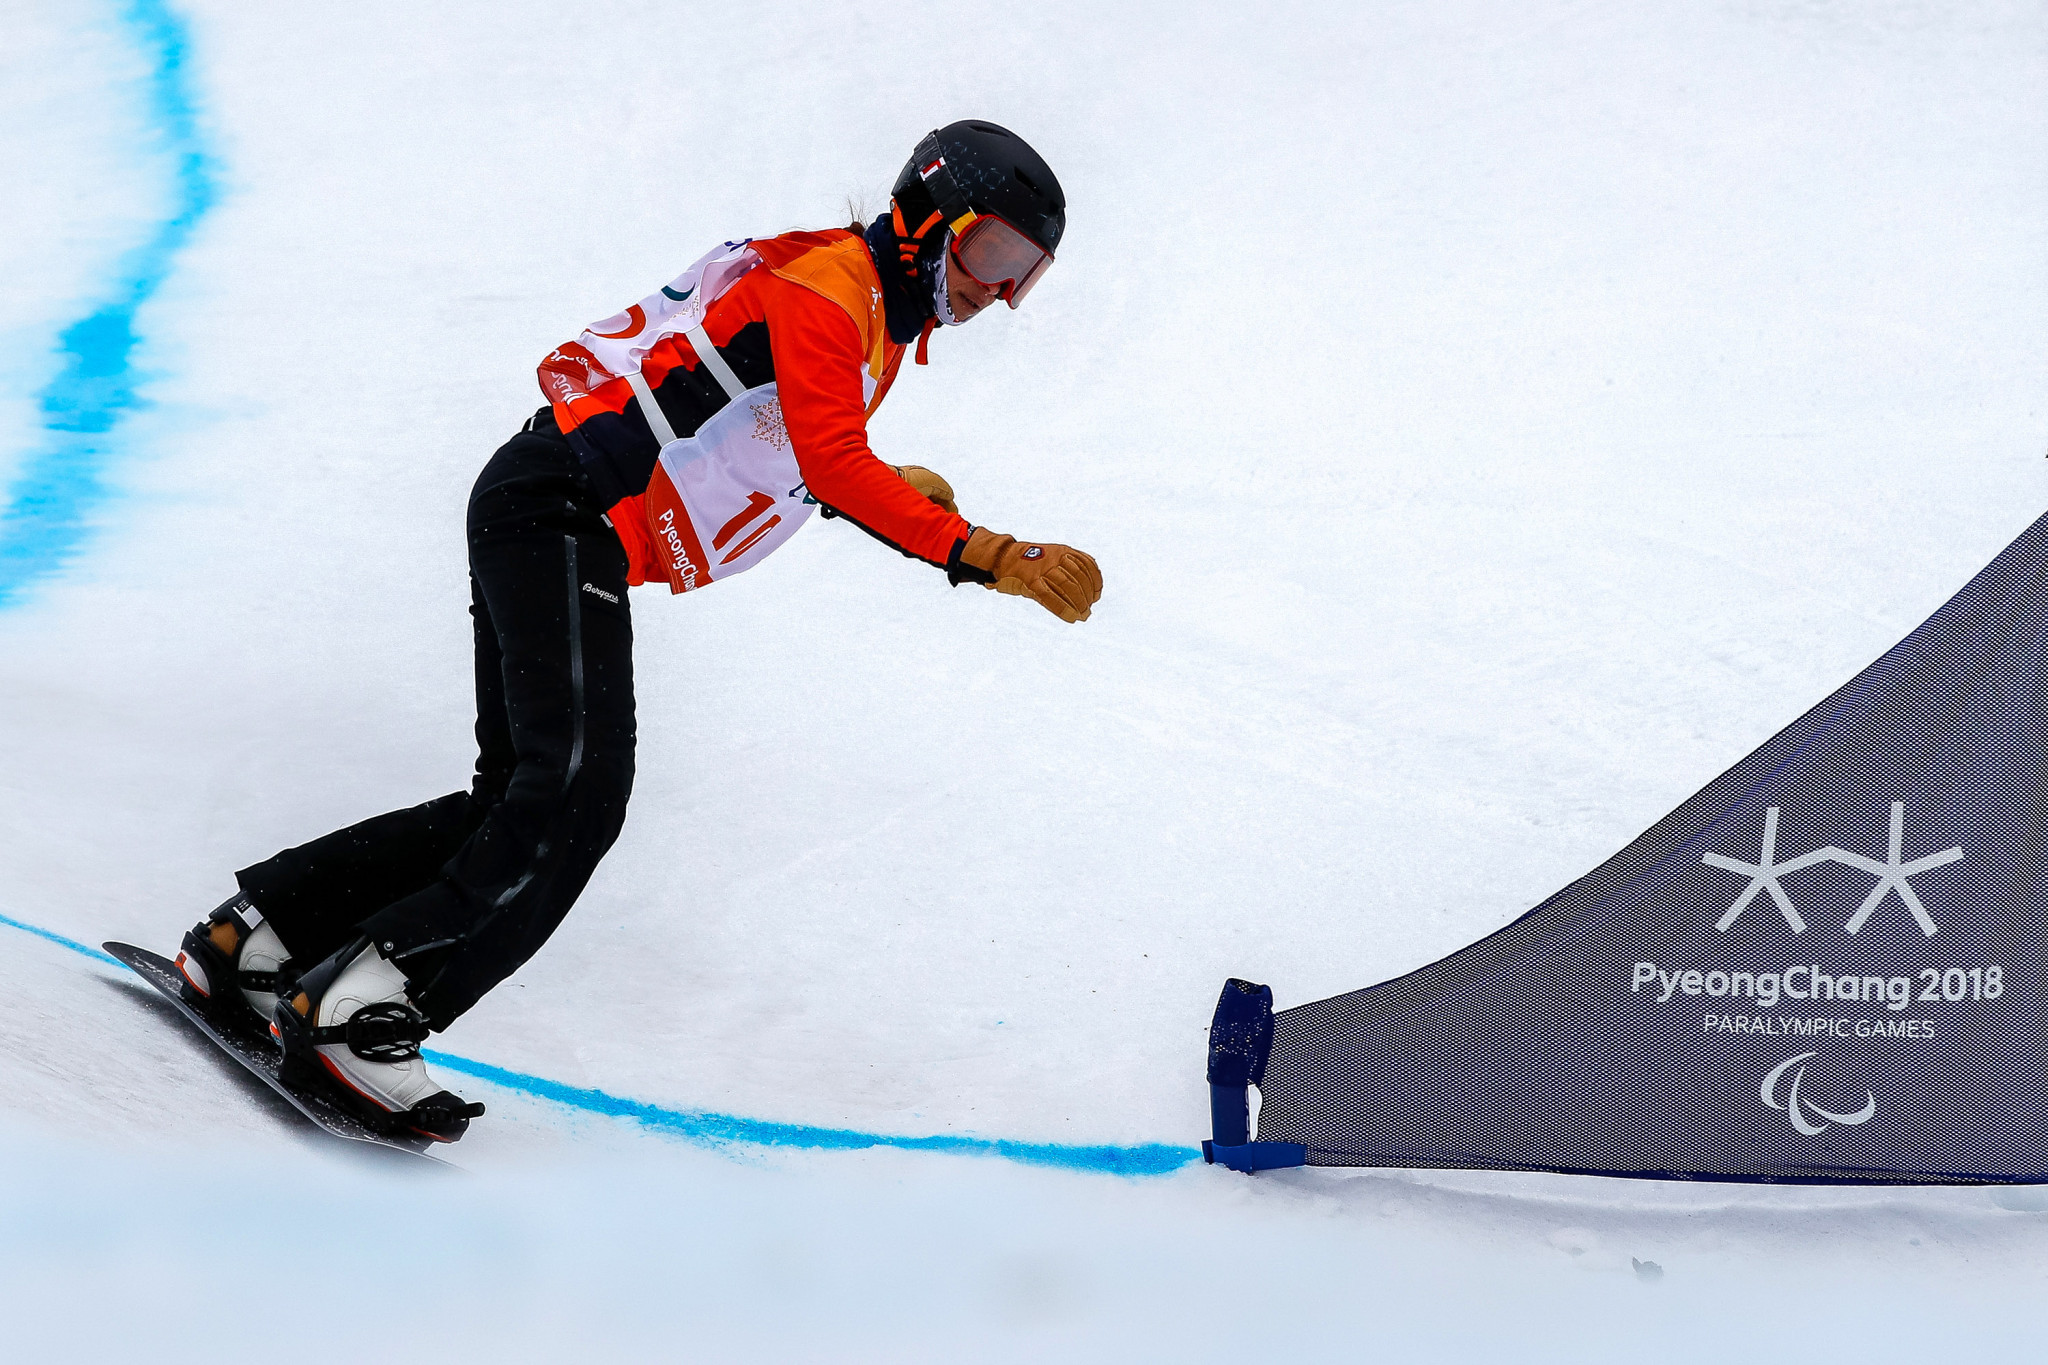 Paralympic champion Mentel-Spee to focus on grassroots snowboarding after retirement